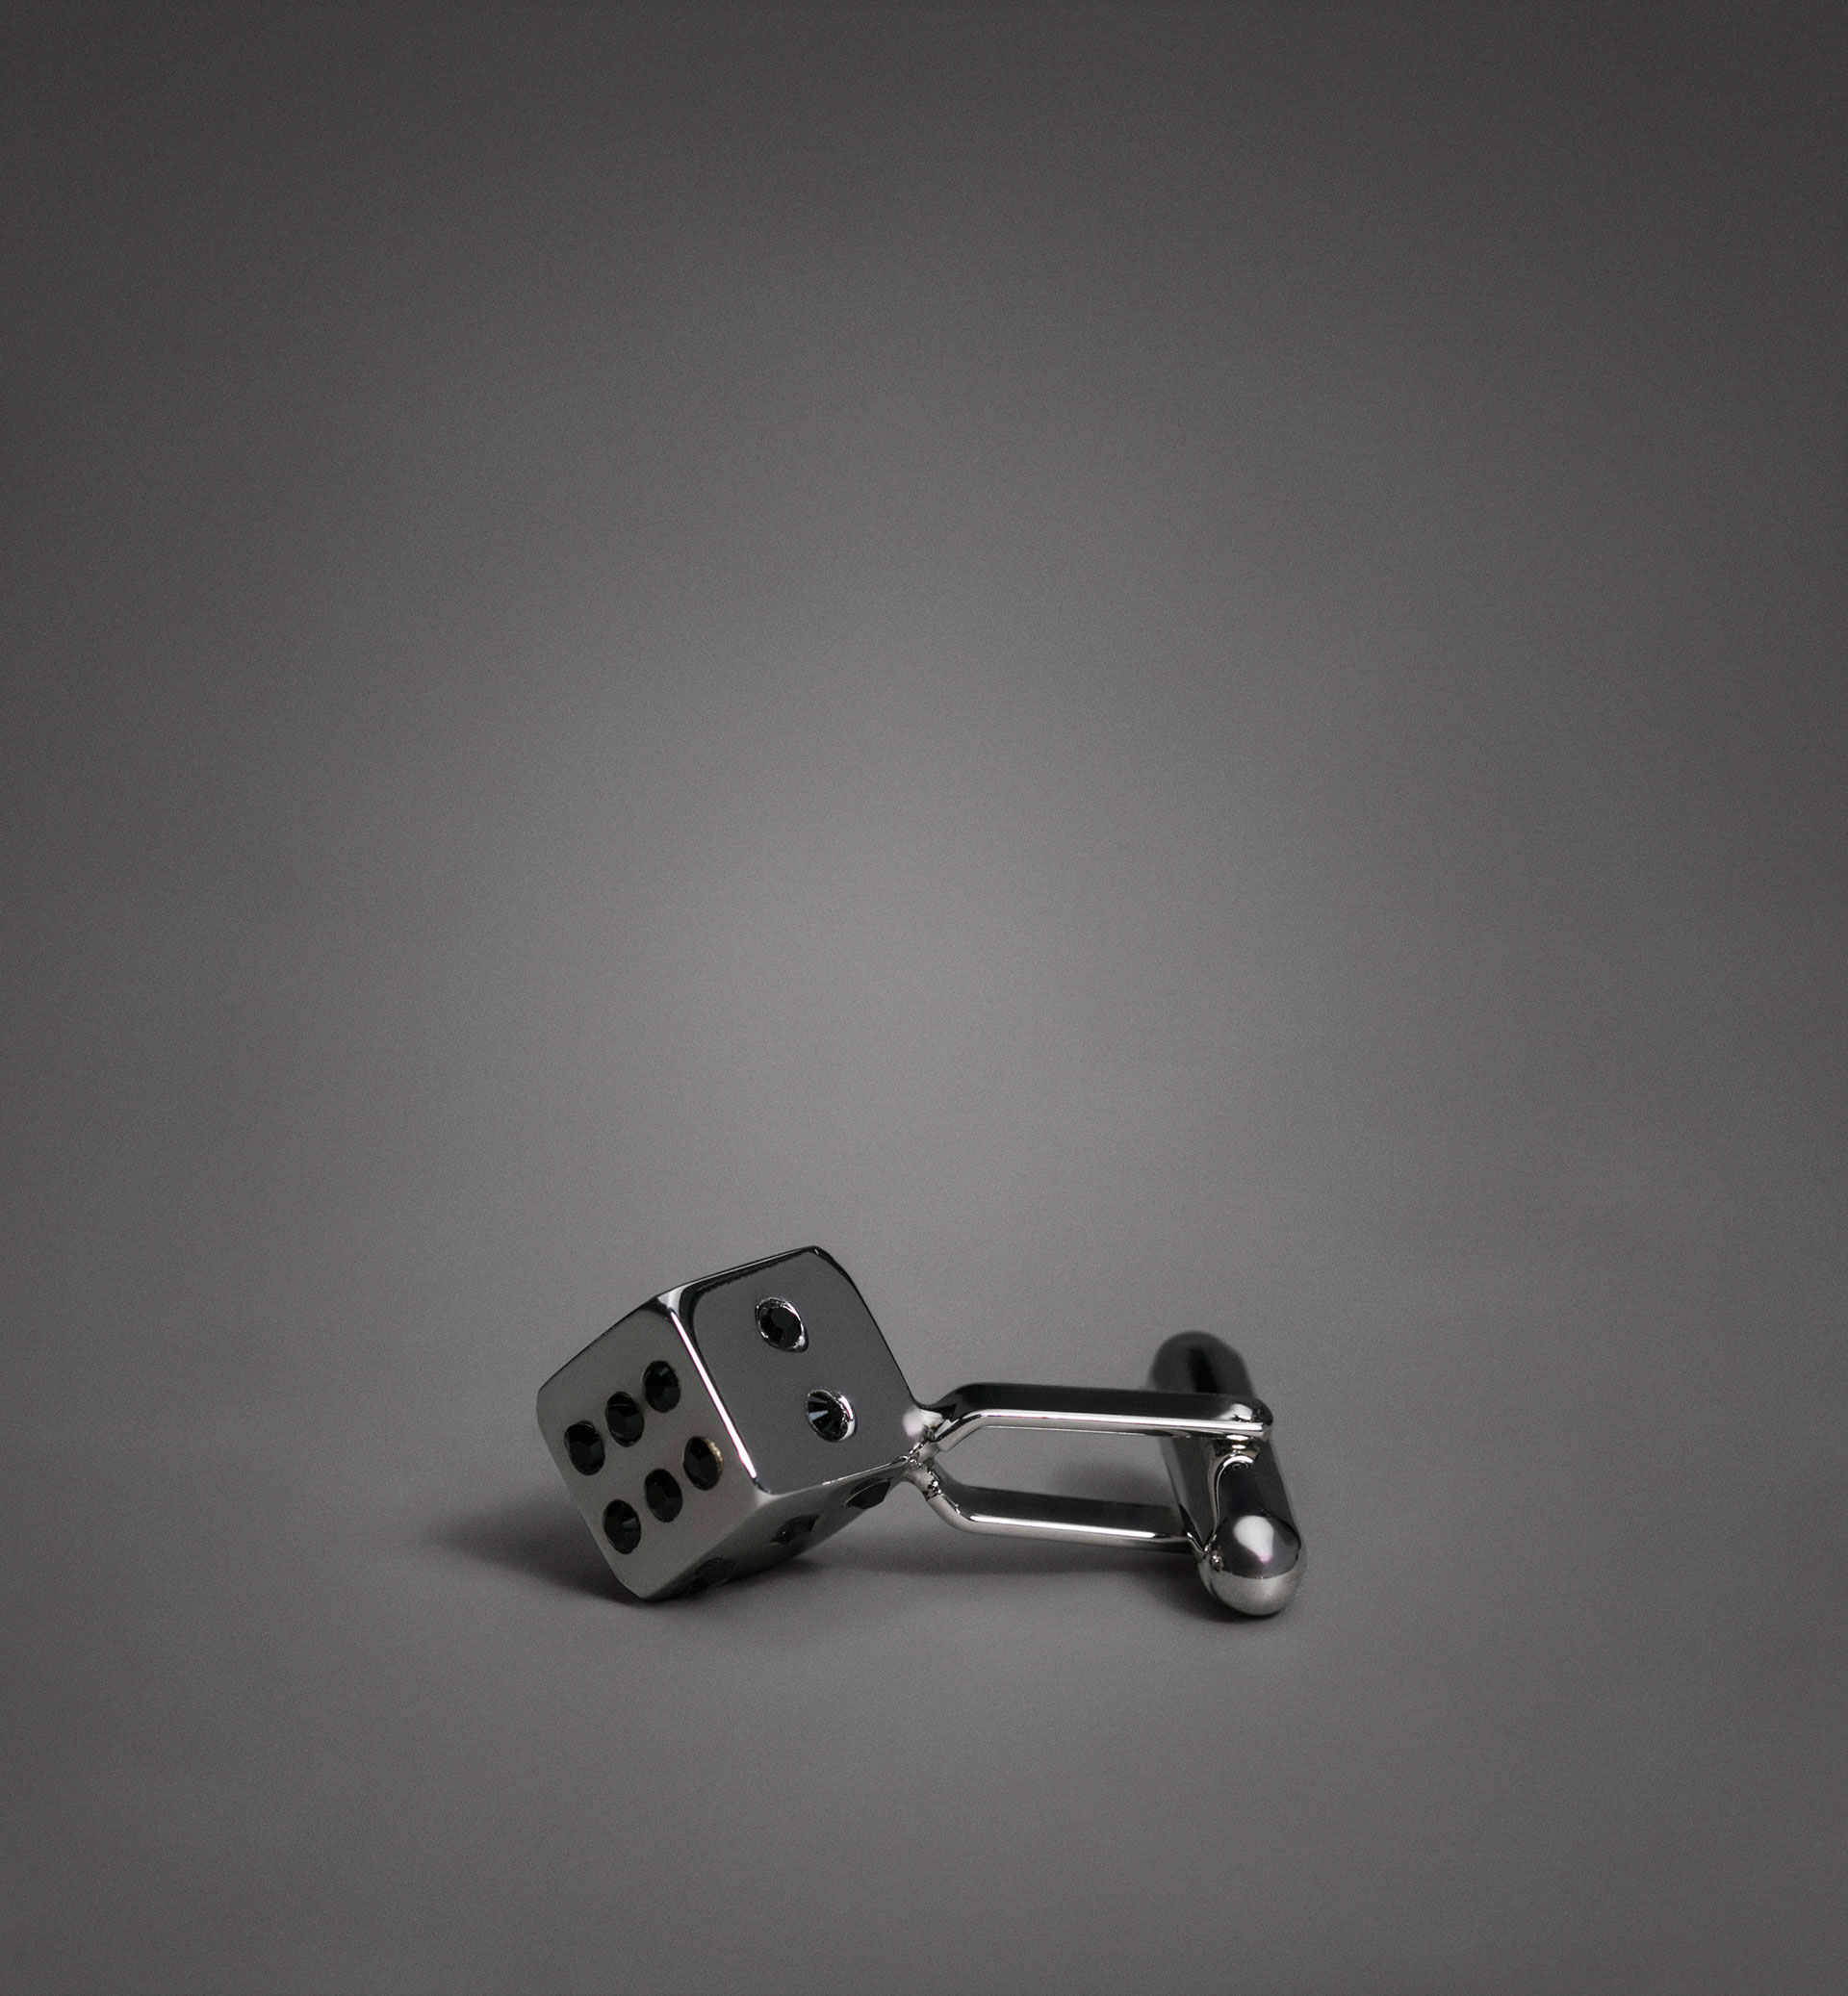 LIMITED EDITION DICE CUFFLINKS